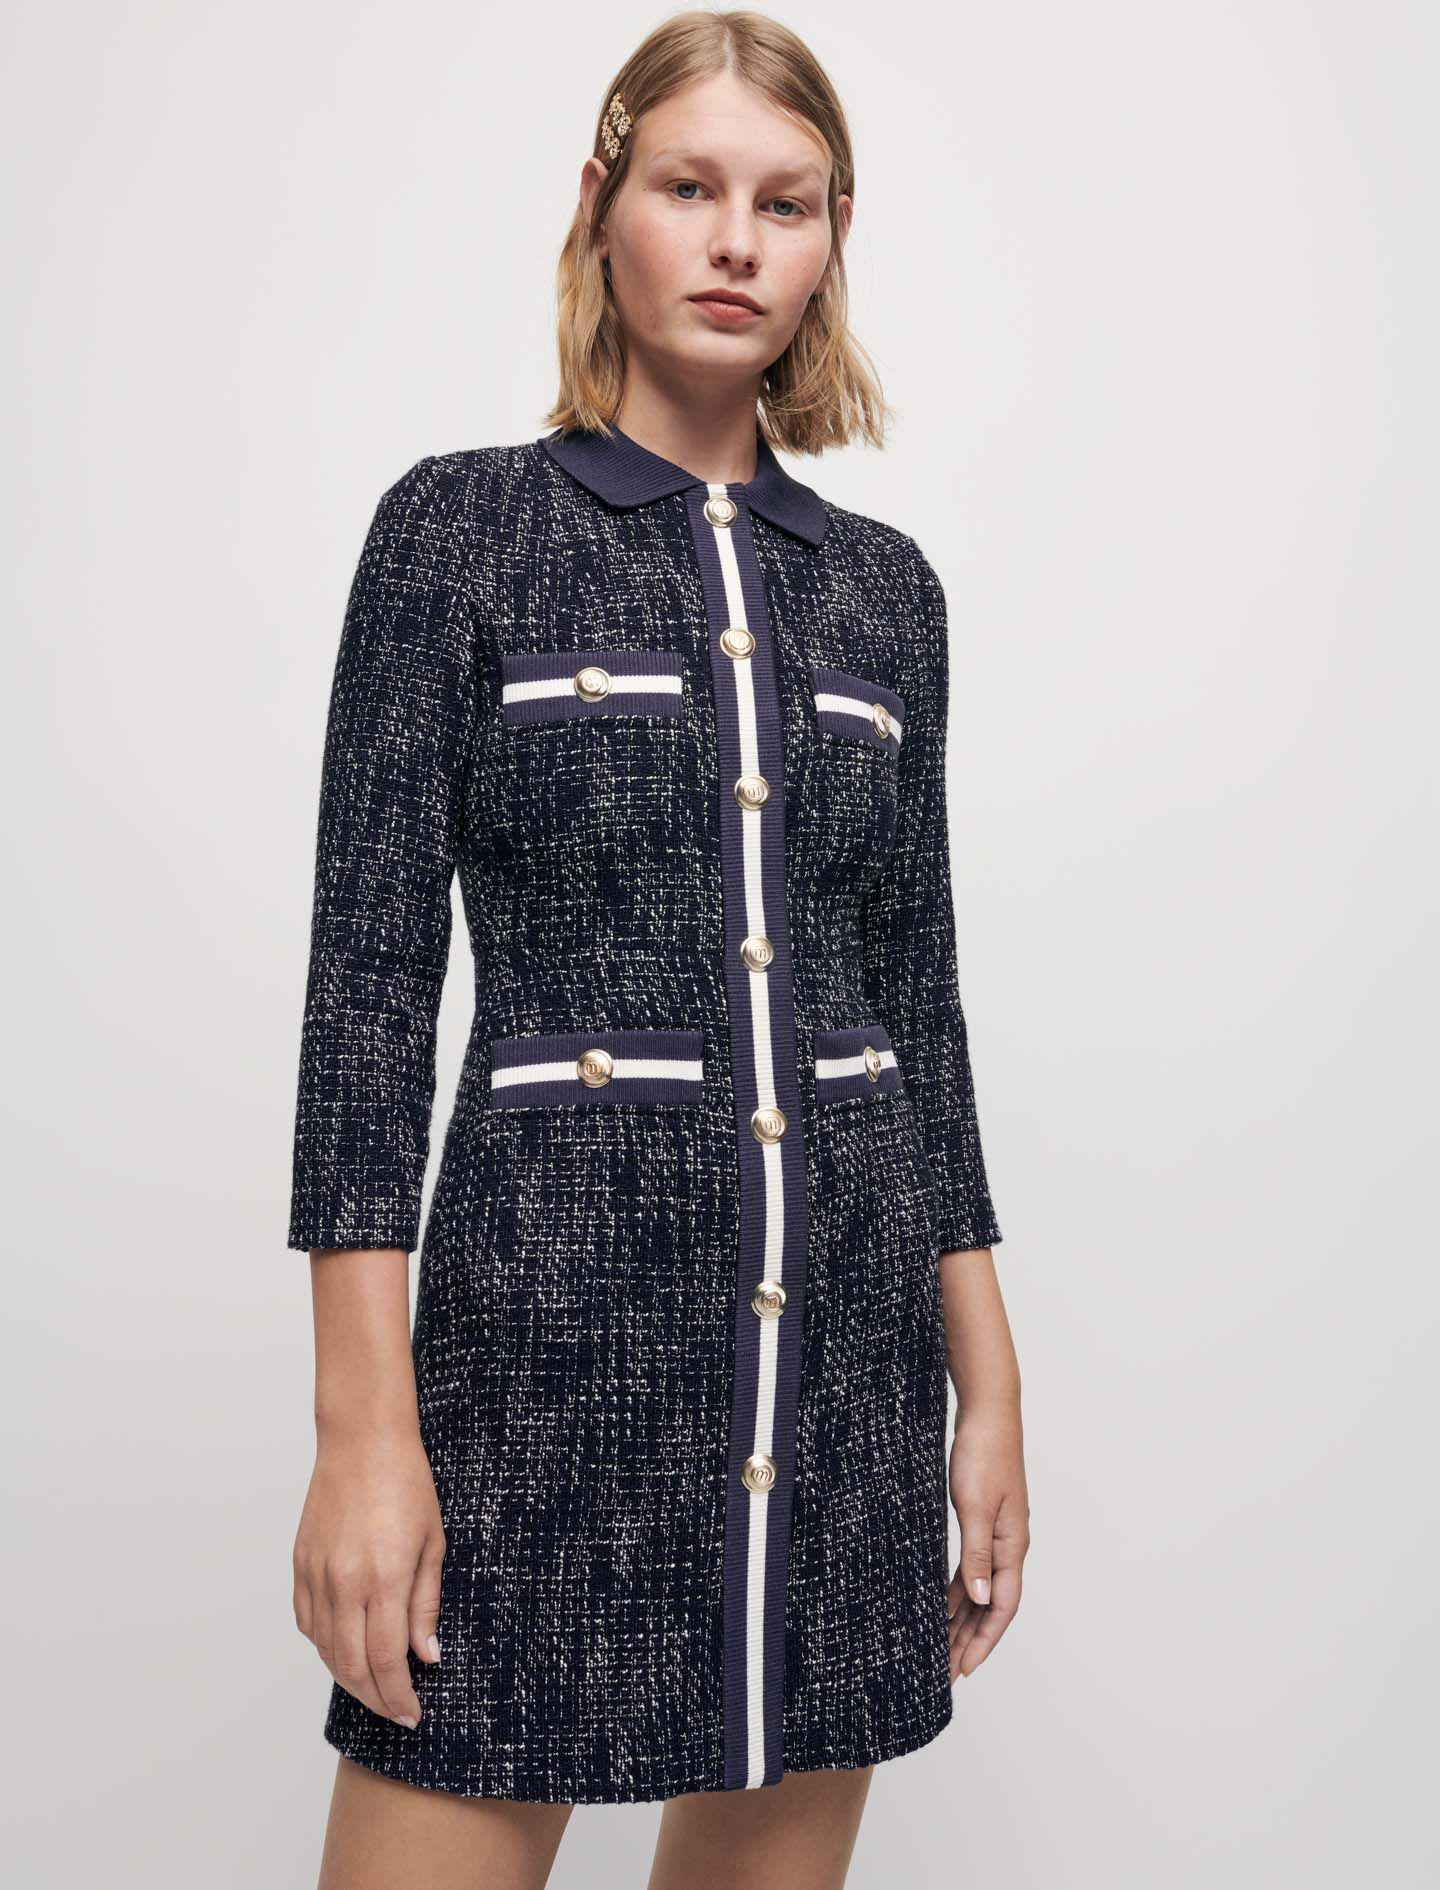 TWEED-STYLE DRESS WITH CONTRASTING BANDS